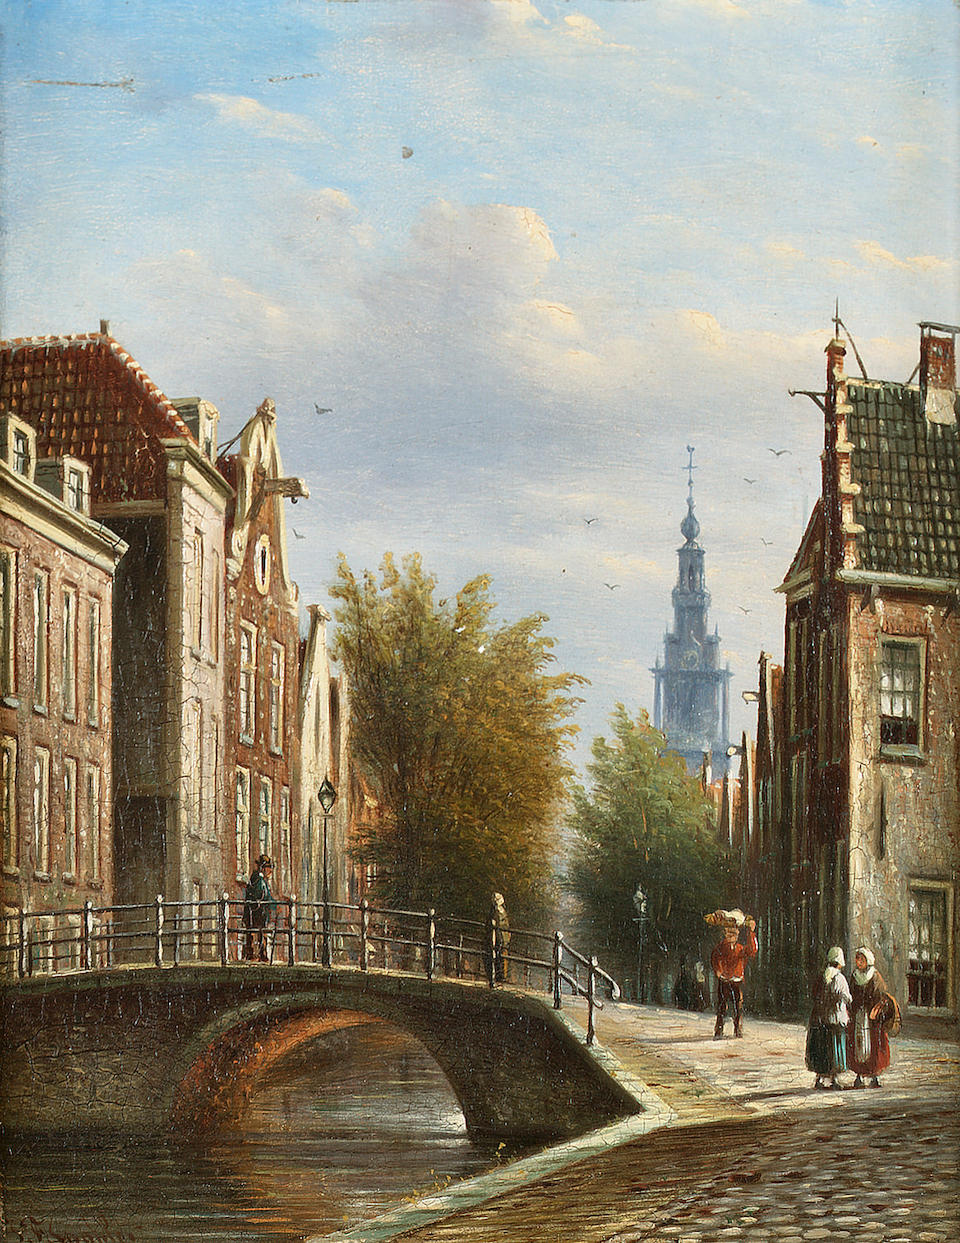 Johannes Franciscus Spohler (Dutch 1853-1894) Figures by a canal in Amsterdam with a view of the Zuiderkerk beyond; Figures in a Dutch street each 20 x 16.5 cm. (8 x 6 1/2 in.)